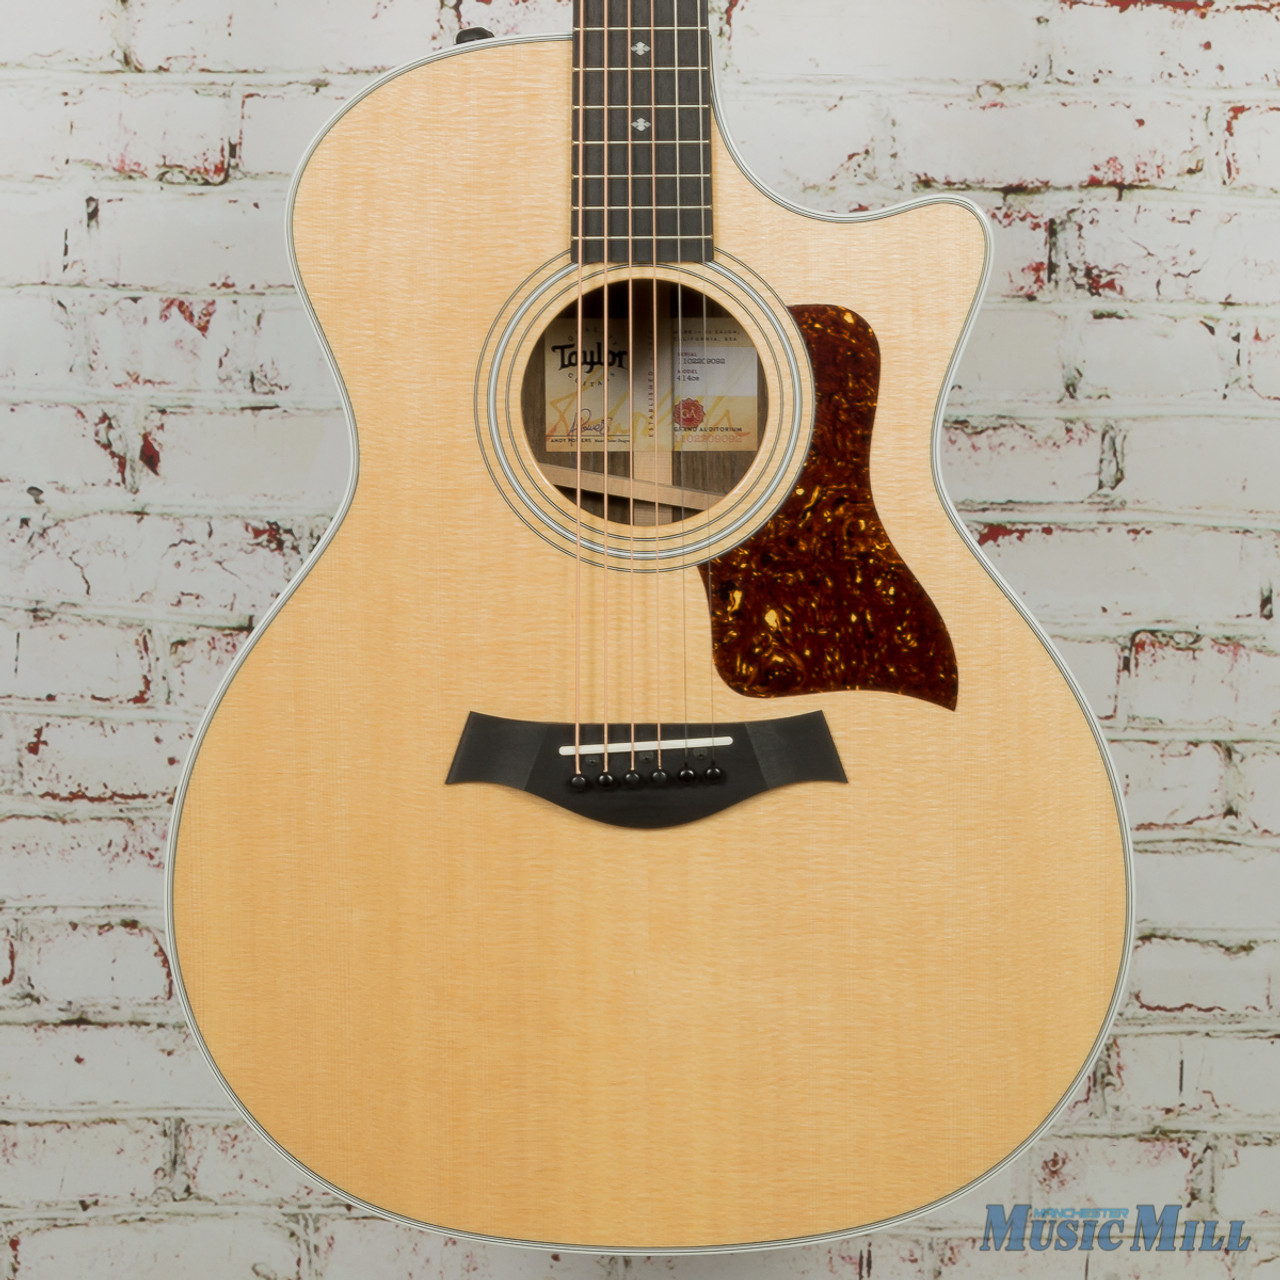 faed5f8cfb8 Taylor 414ce V-Class Special Edition Grand Auditorium Acoustic-Electric  Guitar